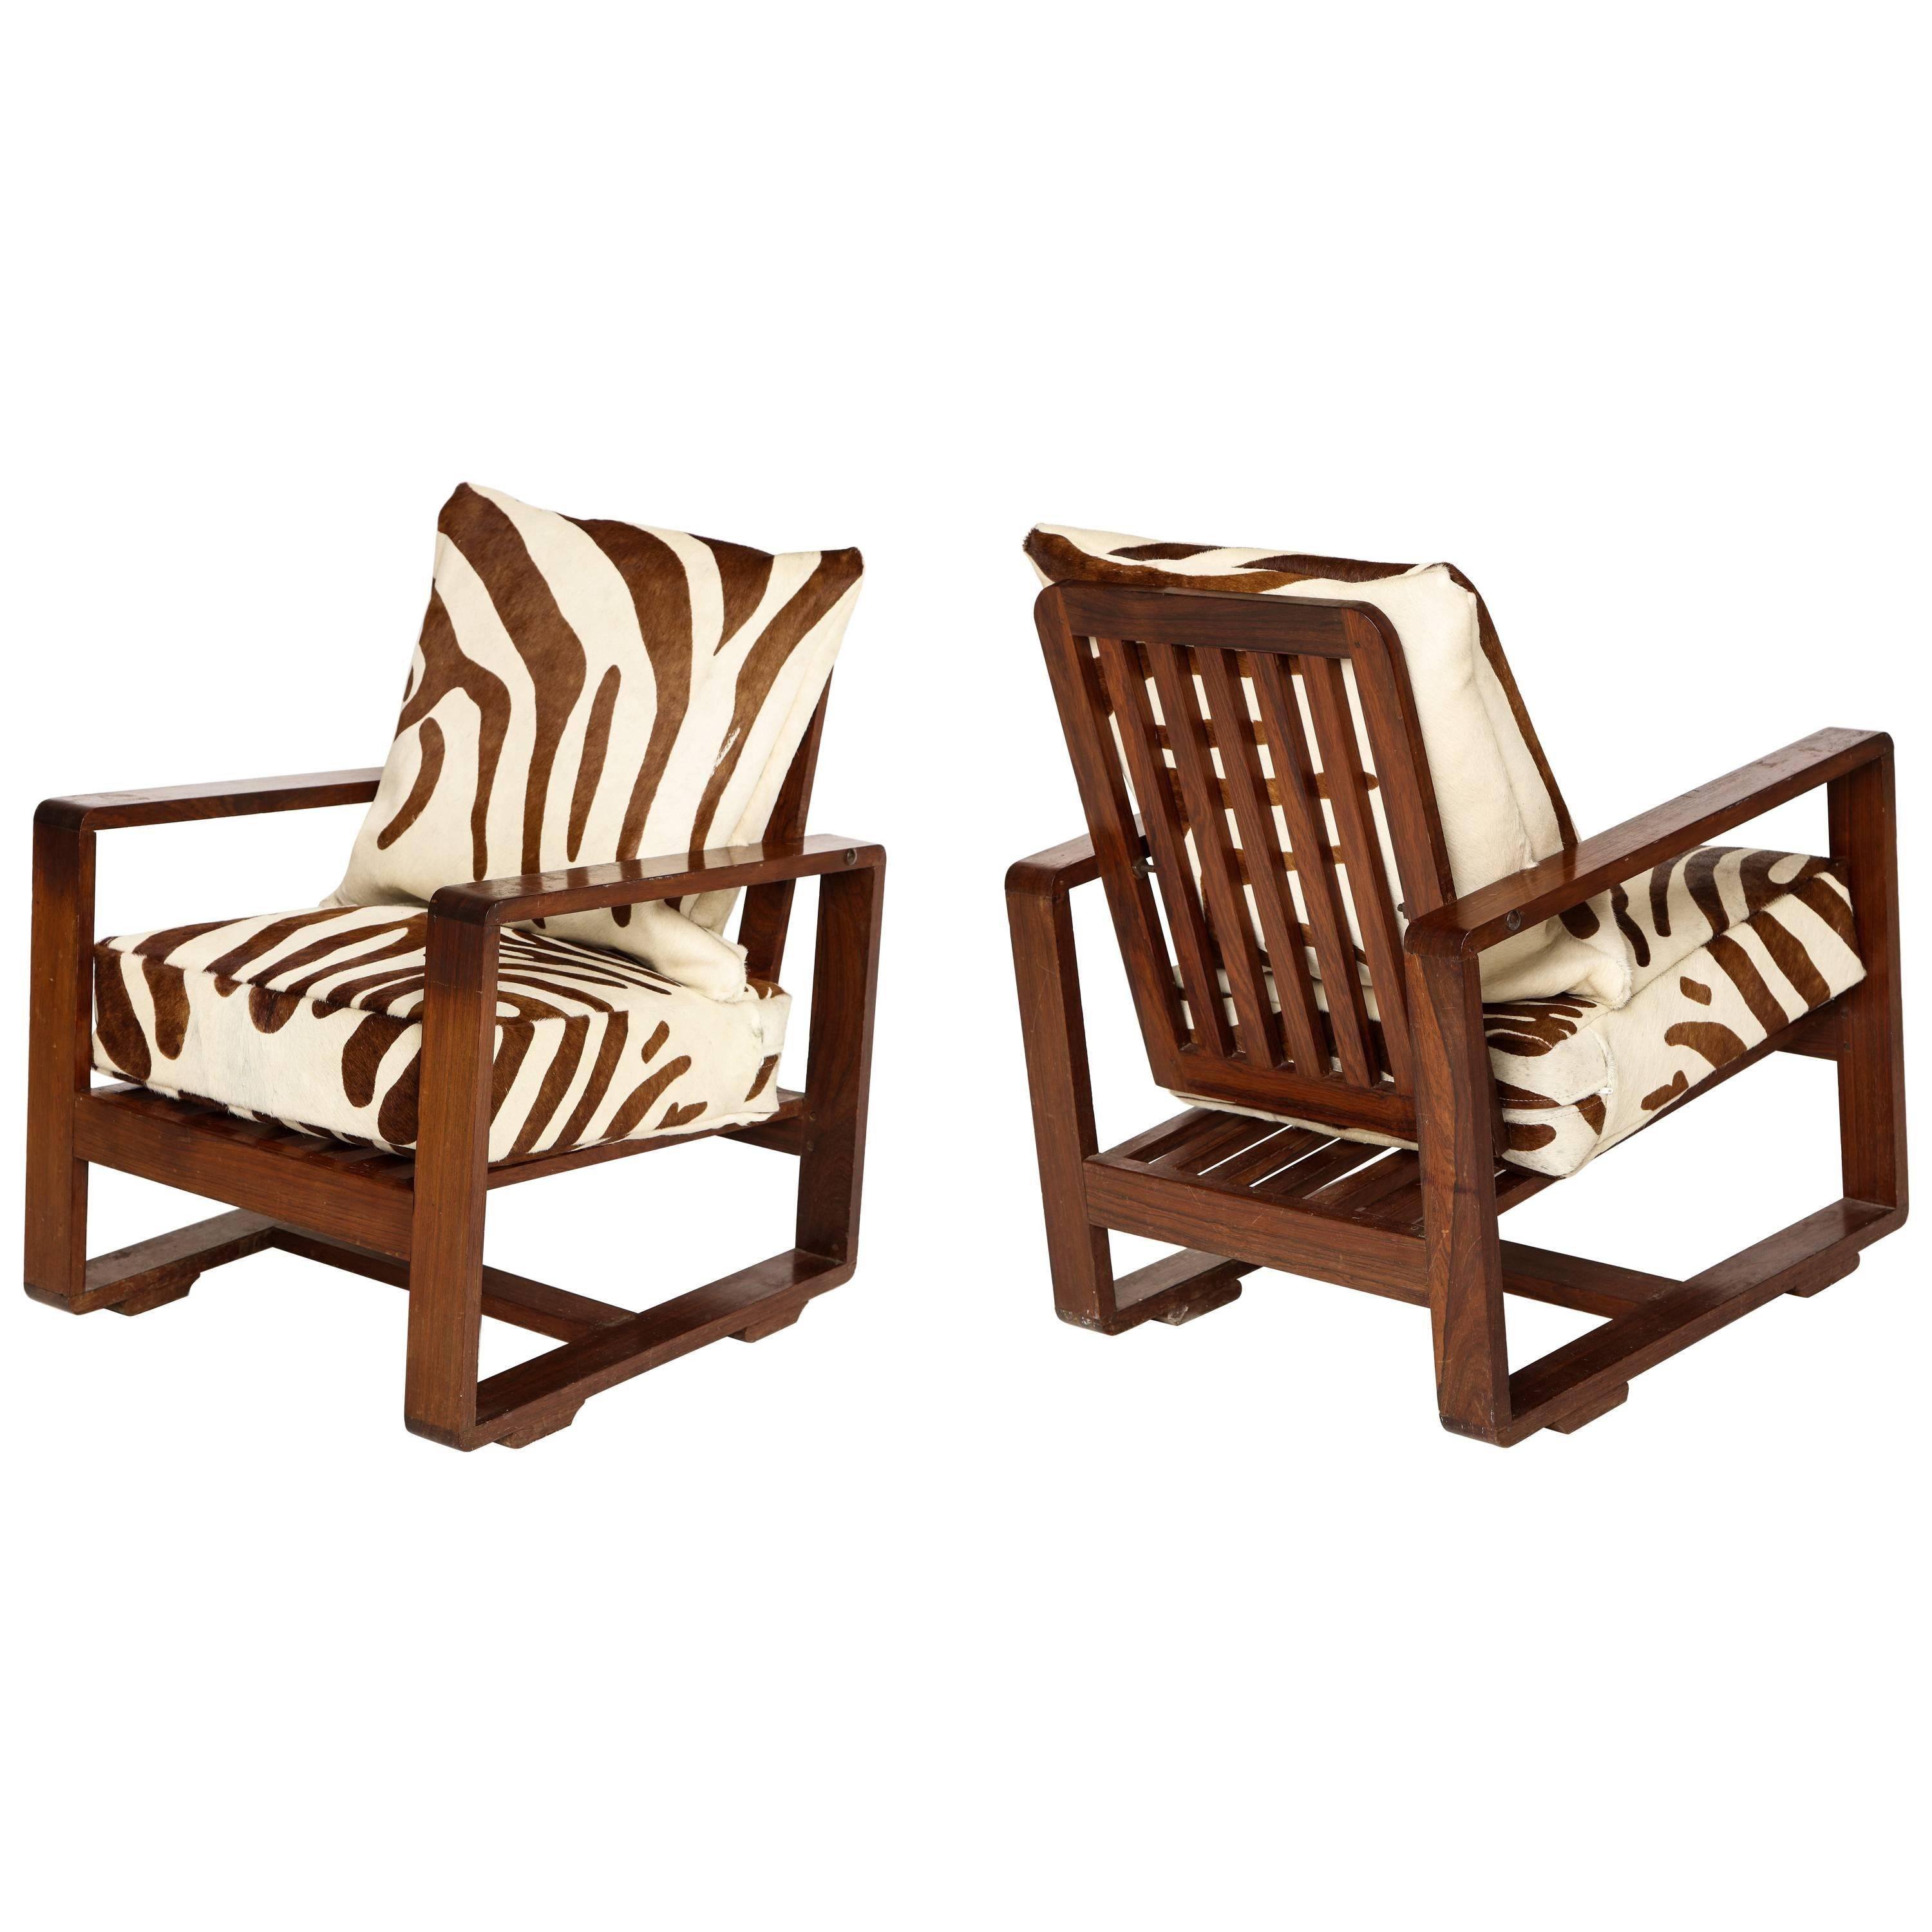 Sornay Attributed Deco Rosewood Lounge Chairs, France 1930s-1940s, Mid-Century